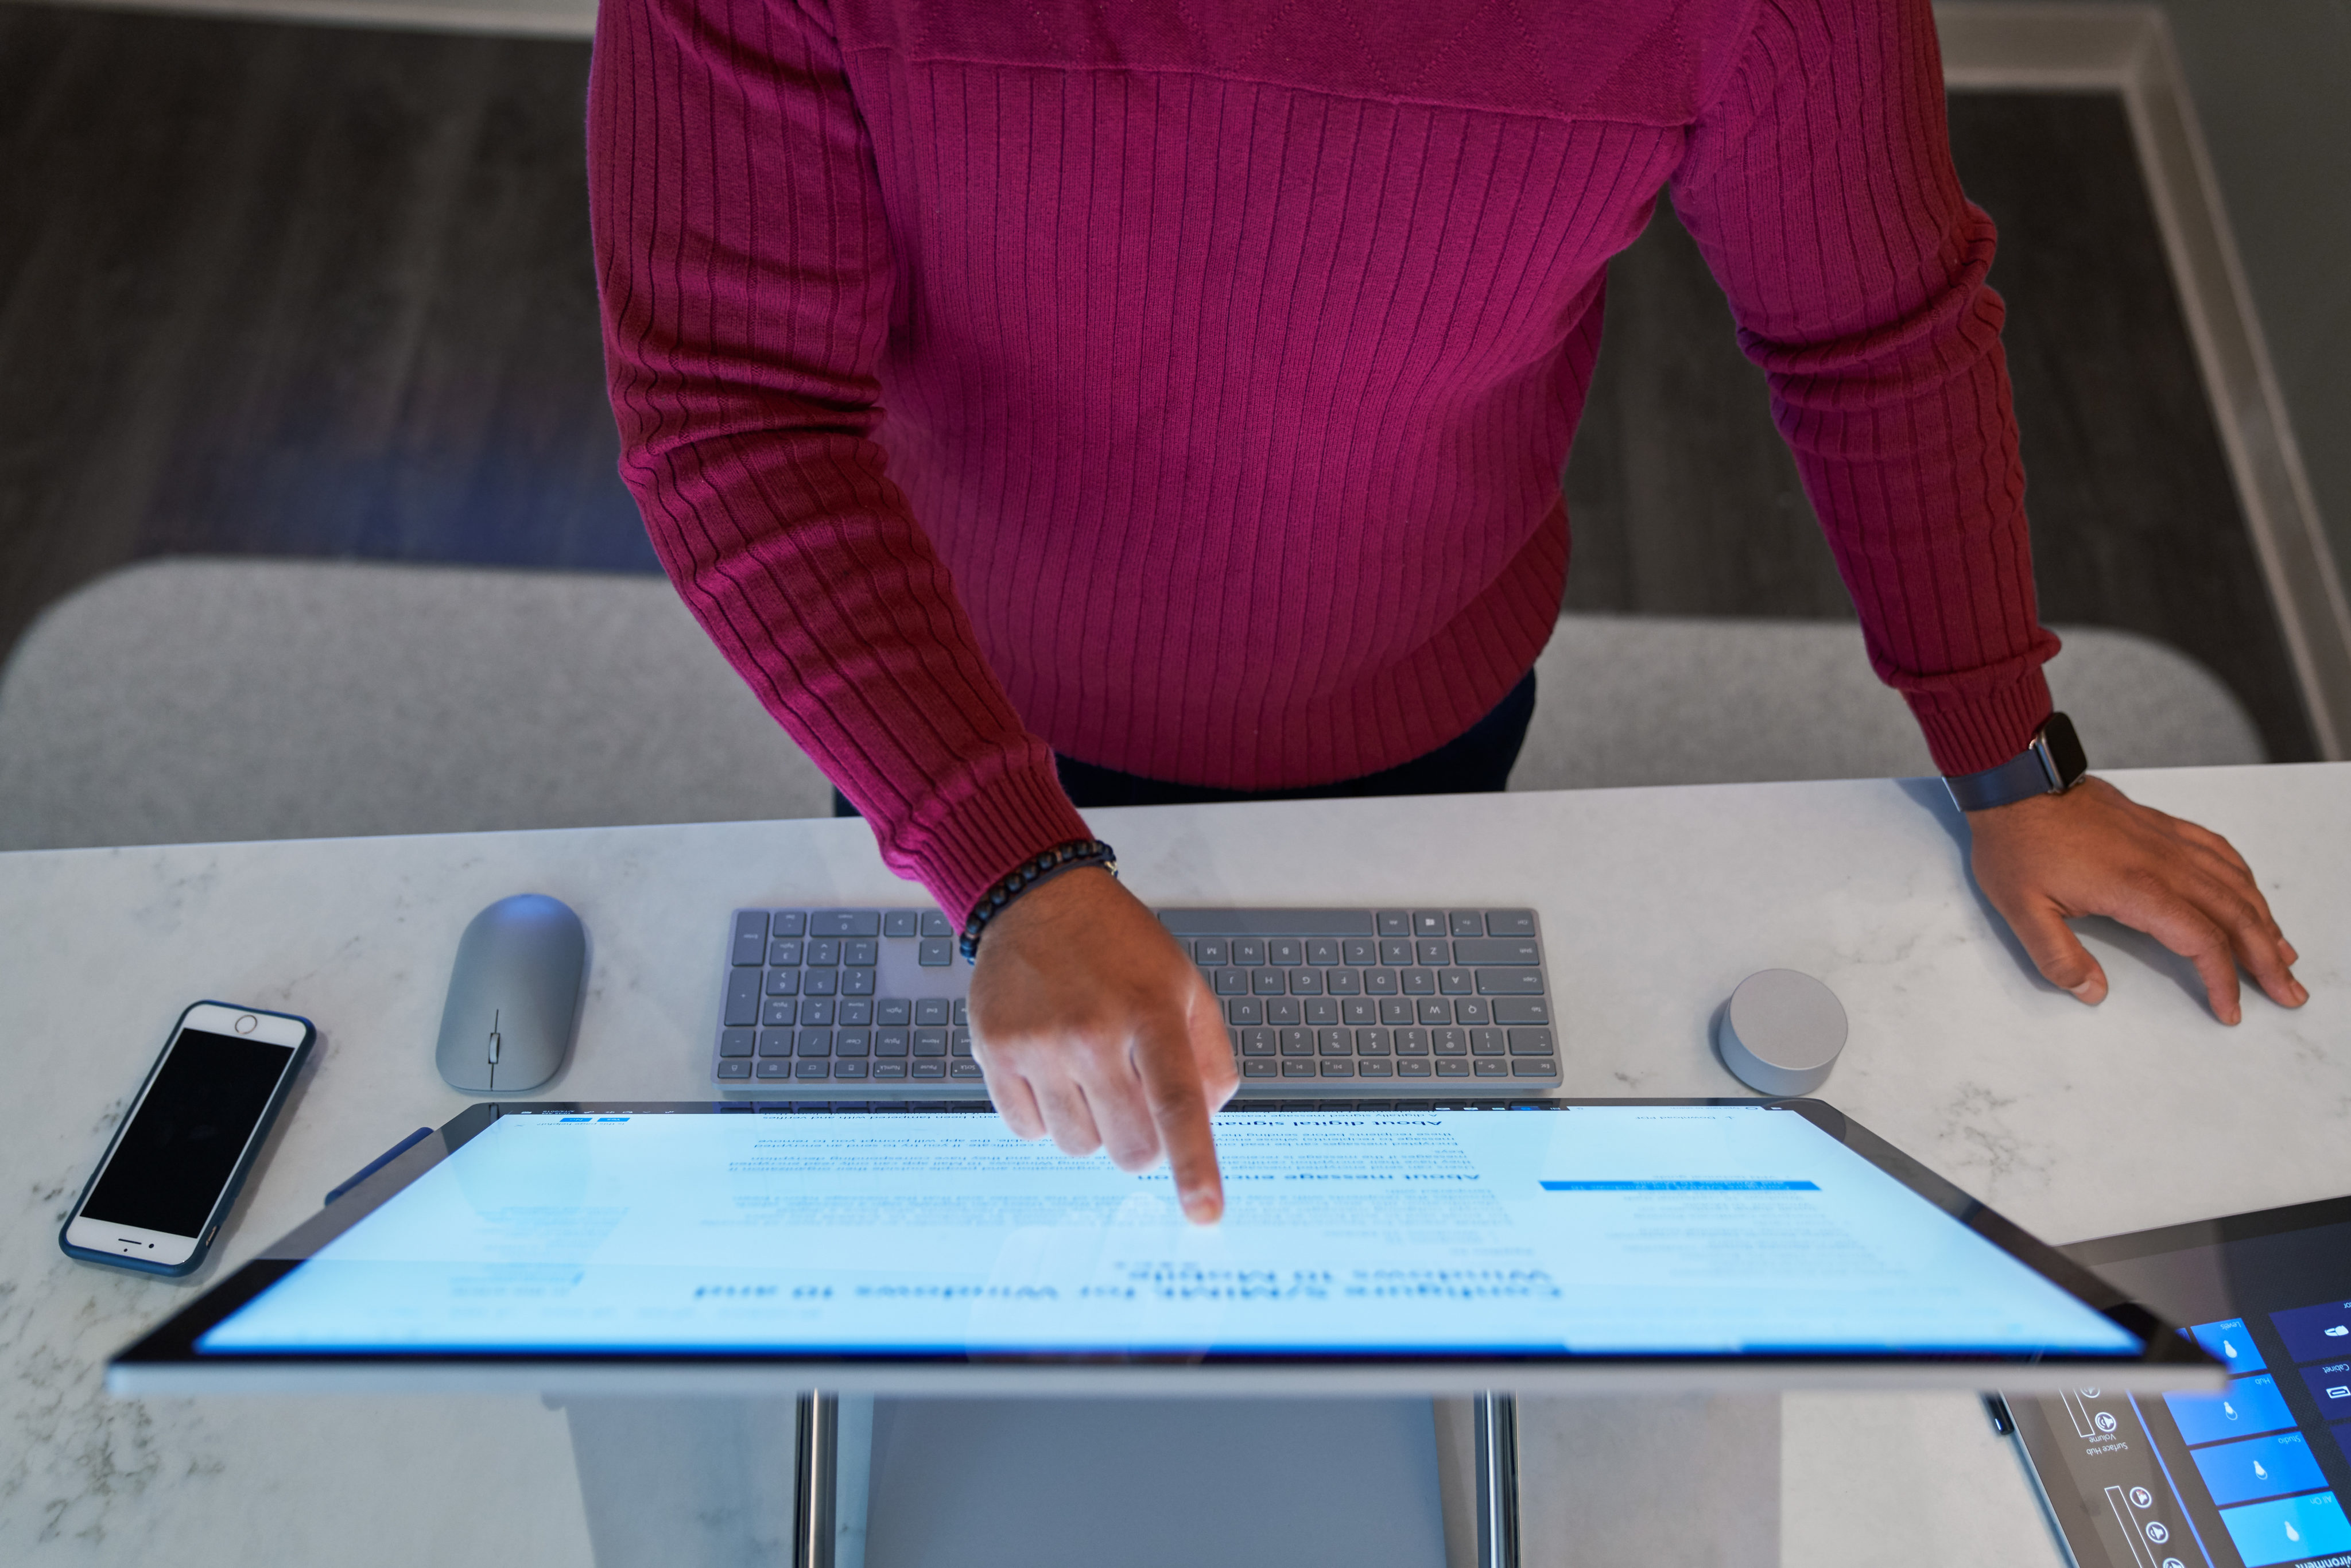 Top down view of a man wearing a dark red shirt working on a Microsoft Surface Studio with a phone next to him on the desktop along with a mouse, keyboard, and Surface Dial.